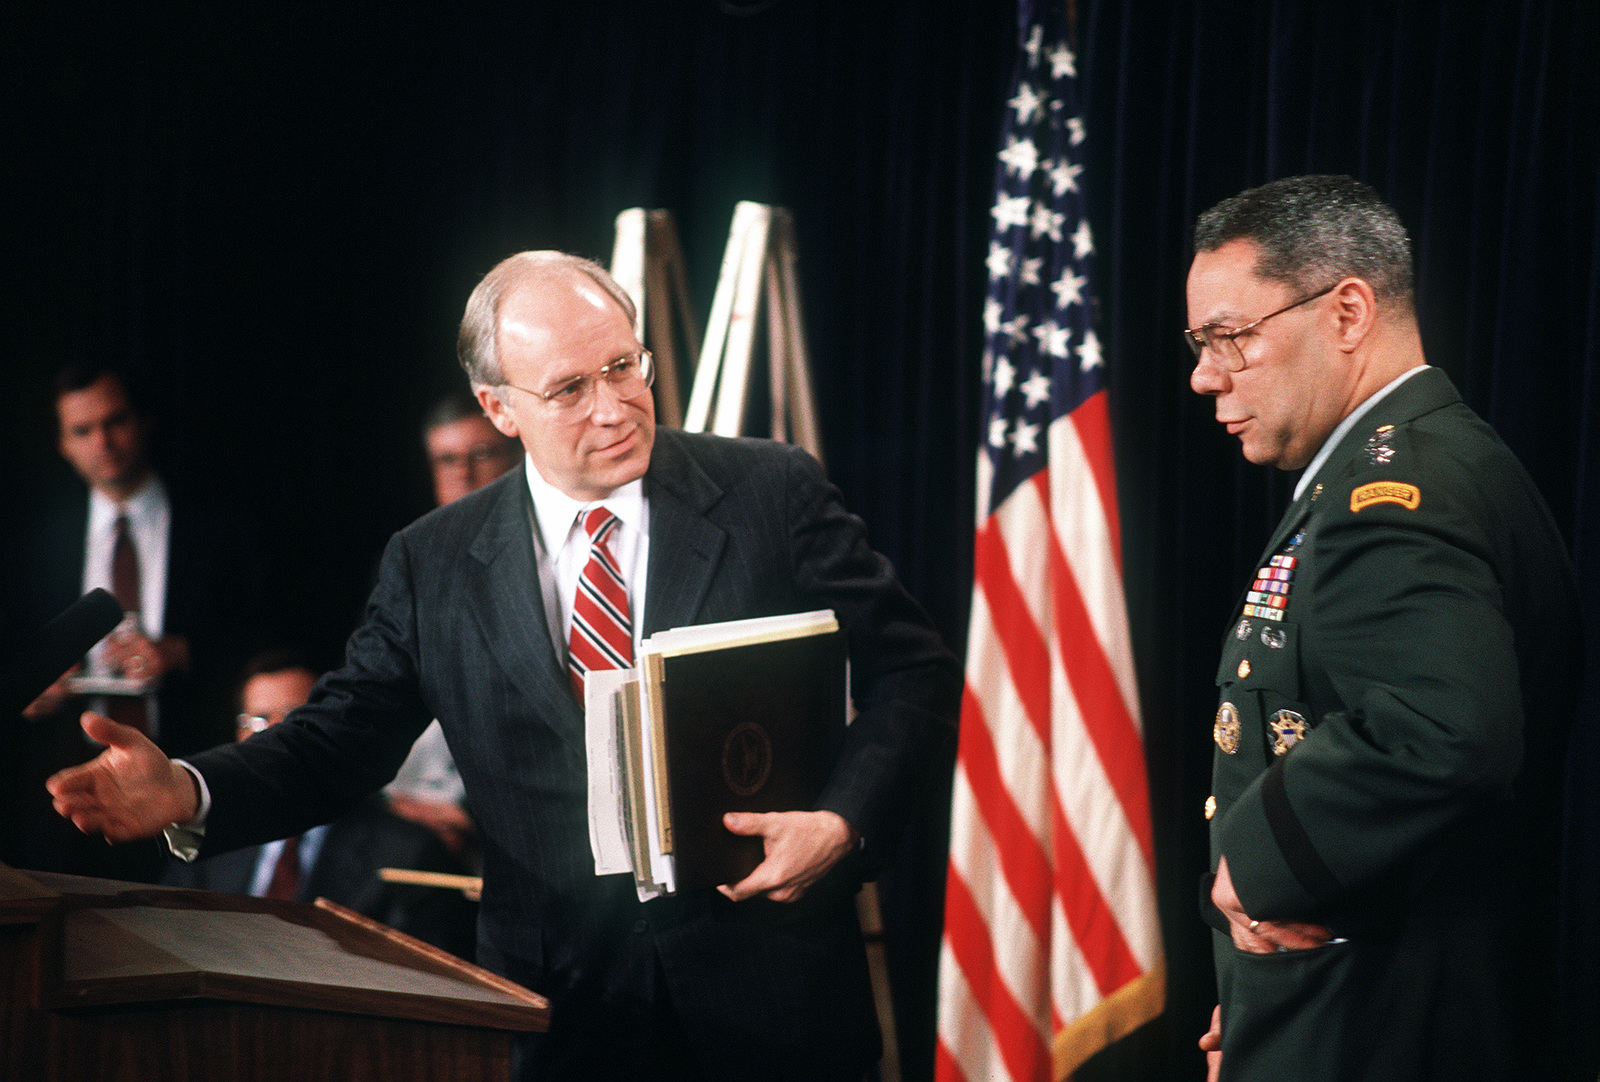 How Old Is Dick Cheney Now, And Where Does He Live